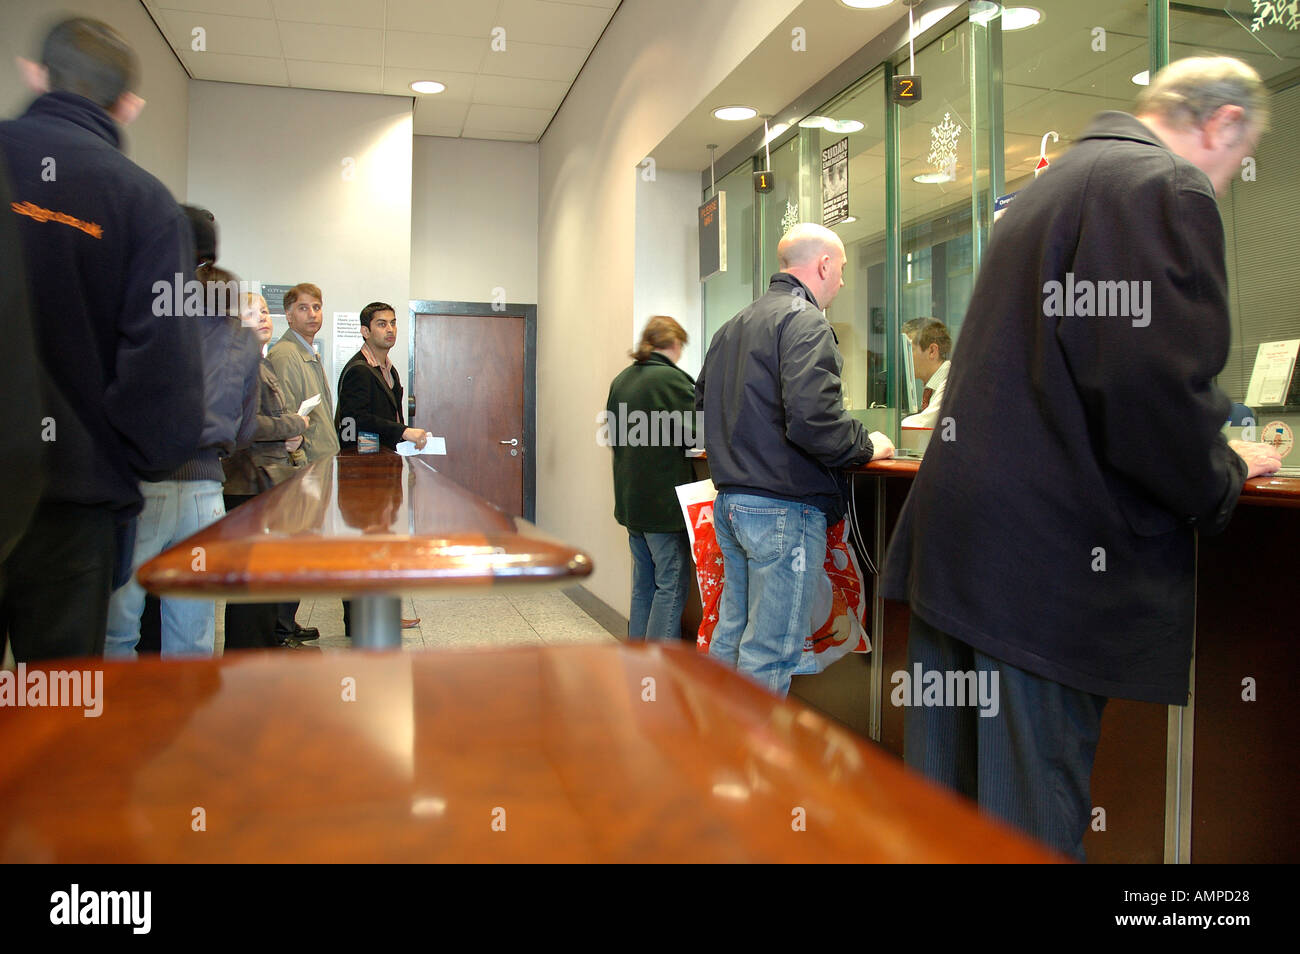 Customers queue at a branch of HSBC bank in the UK - Stock Image